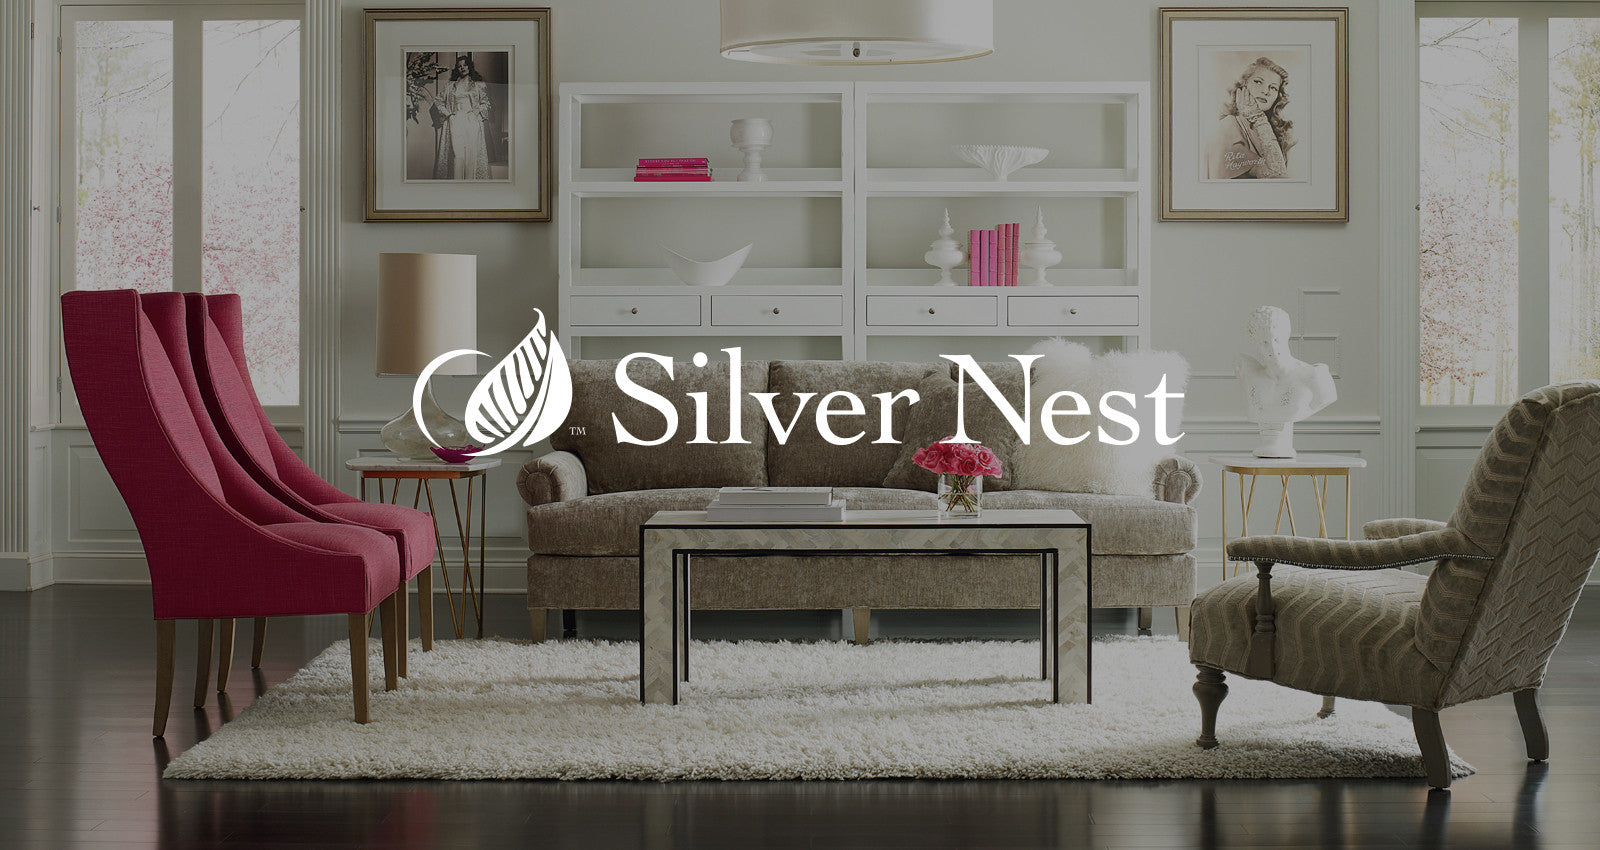 Silver Nest